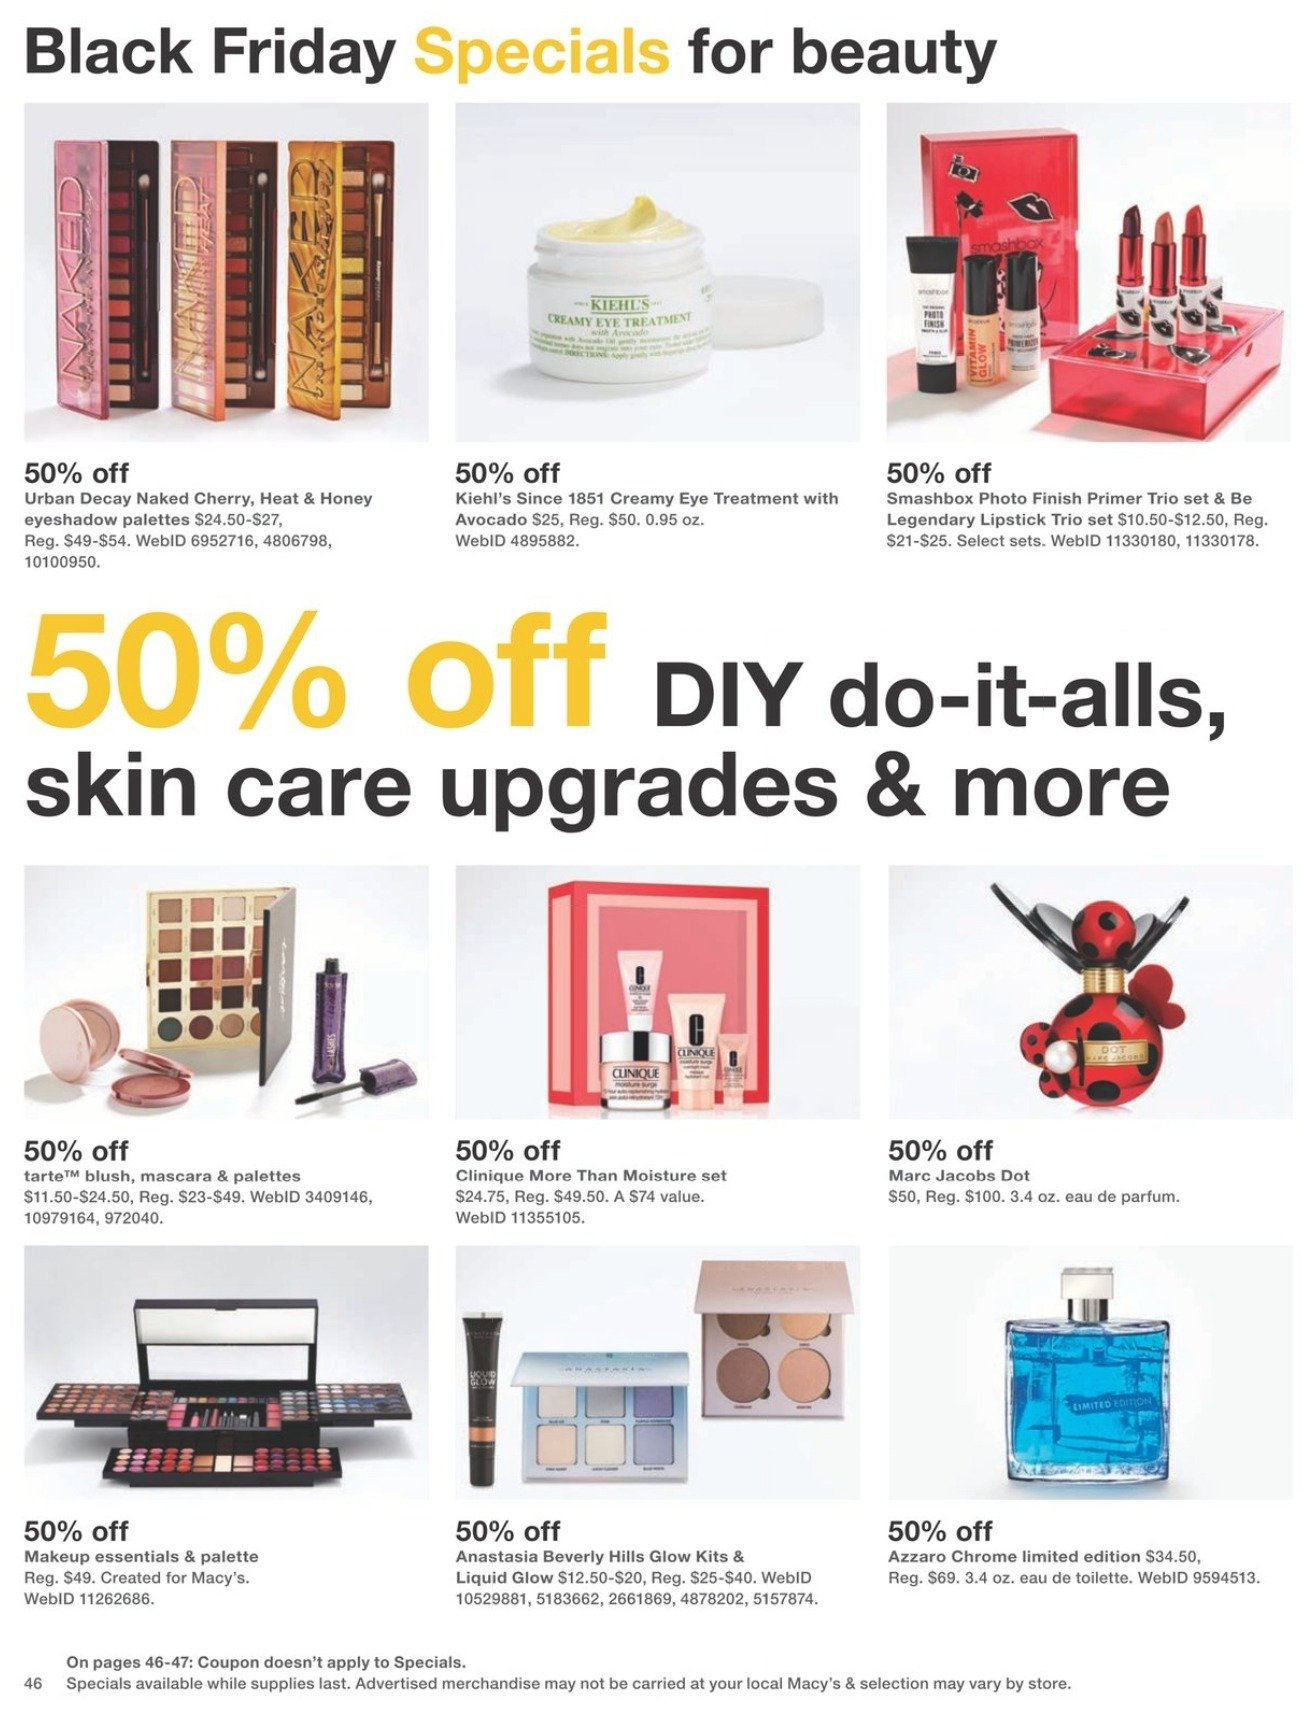 Macy's Black Friday 2020 Page 46